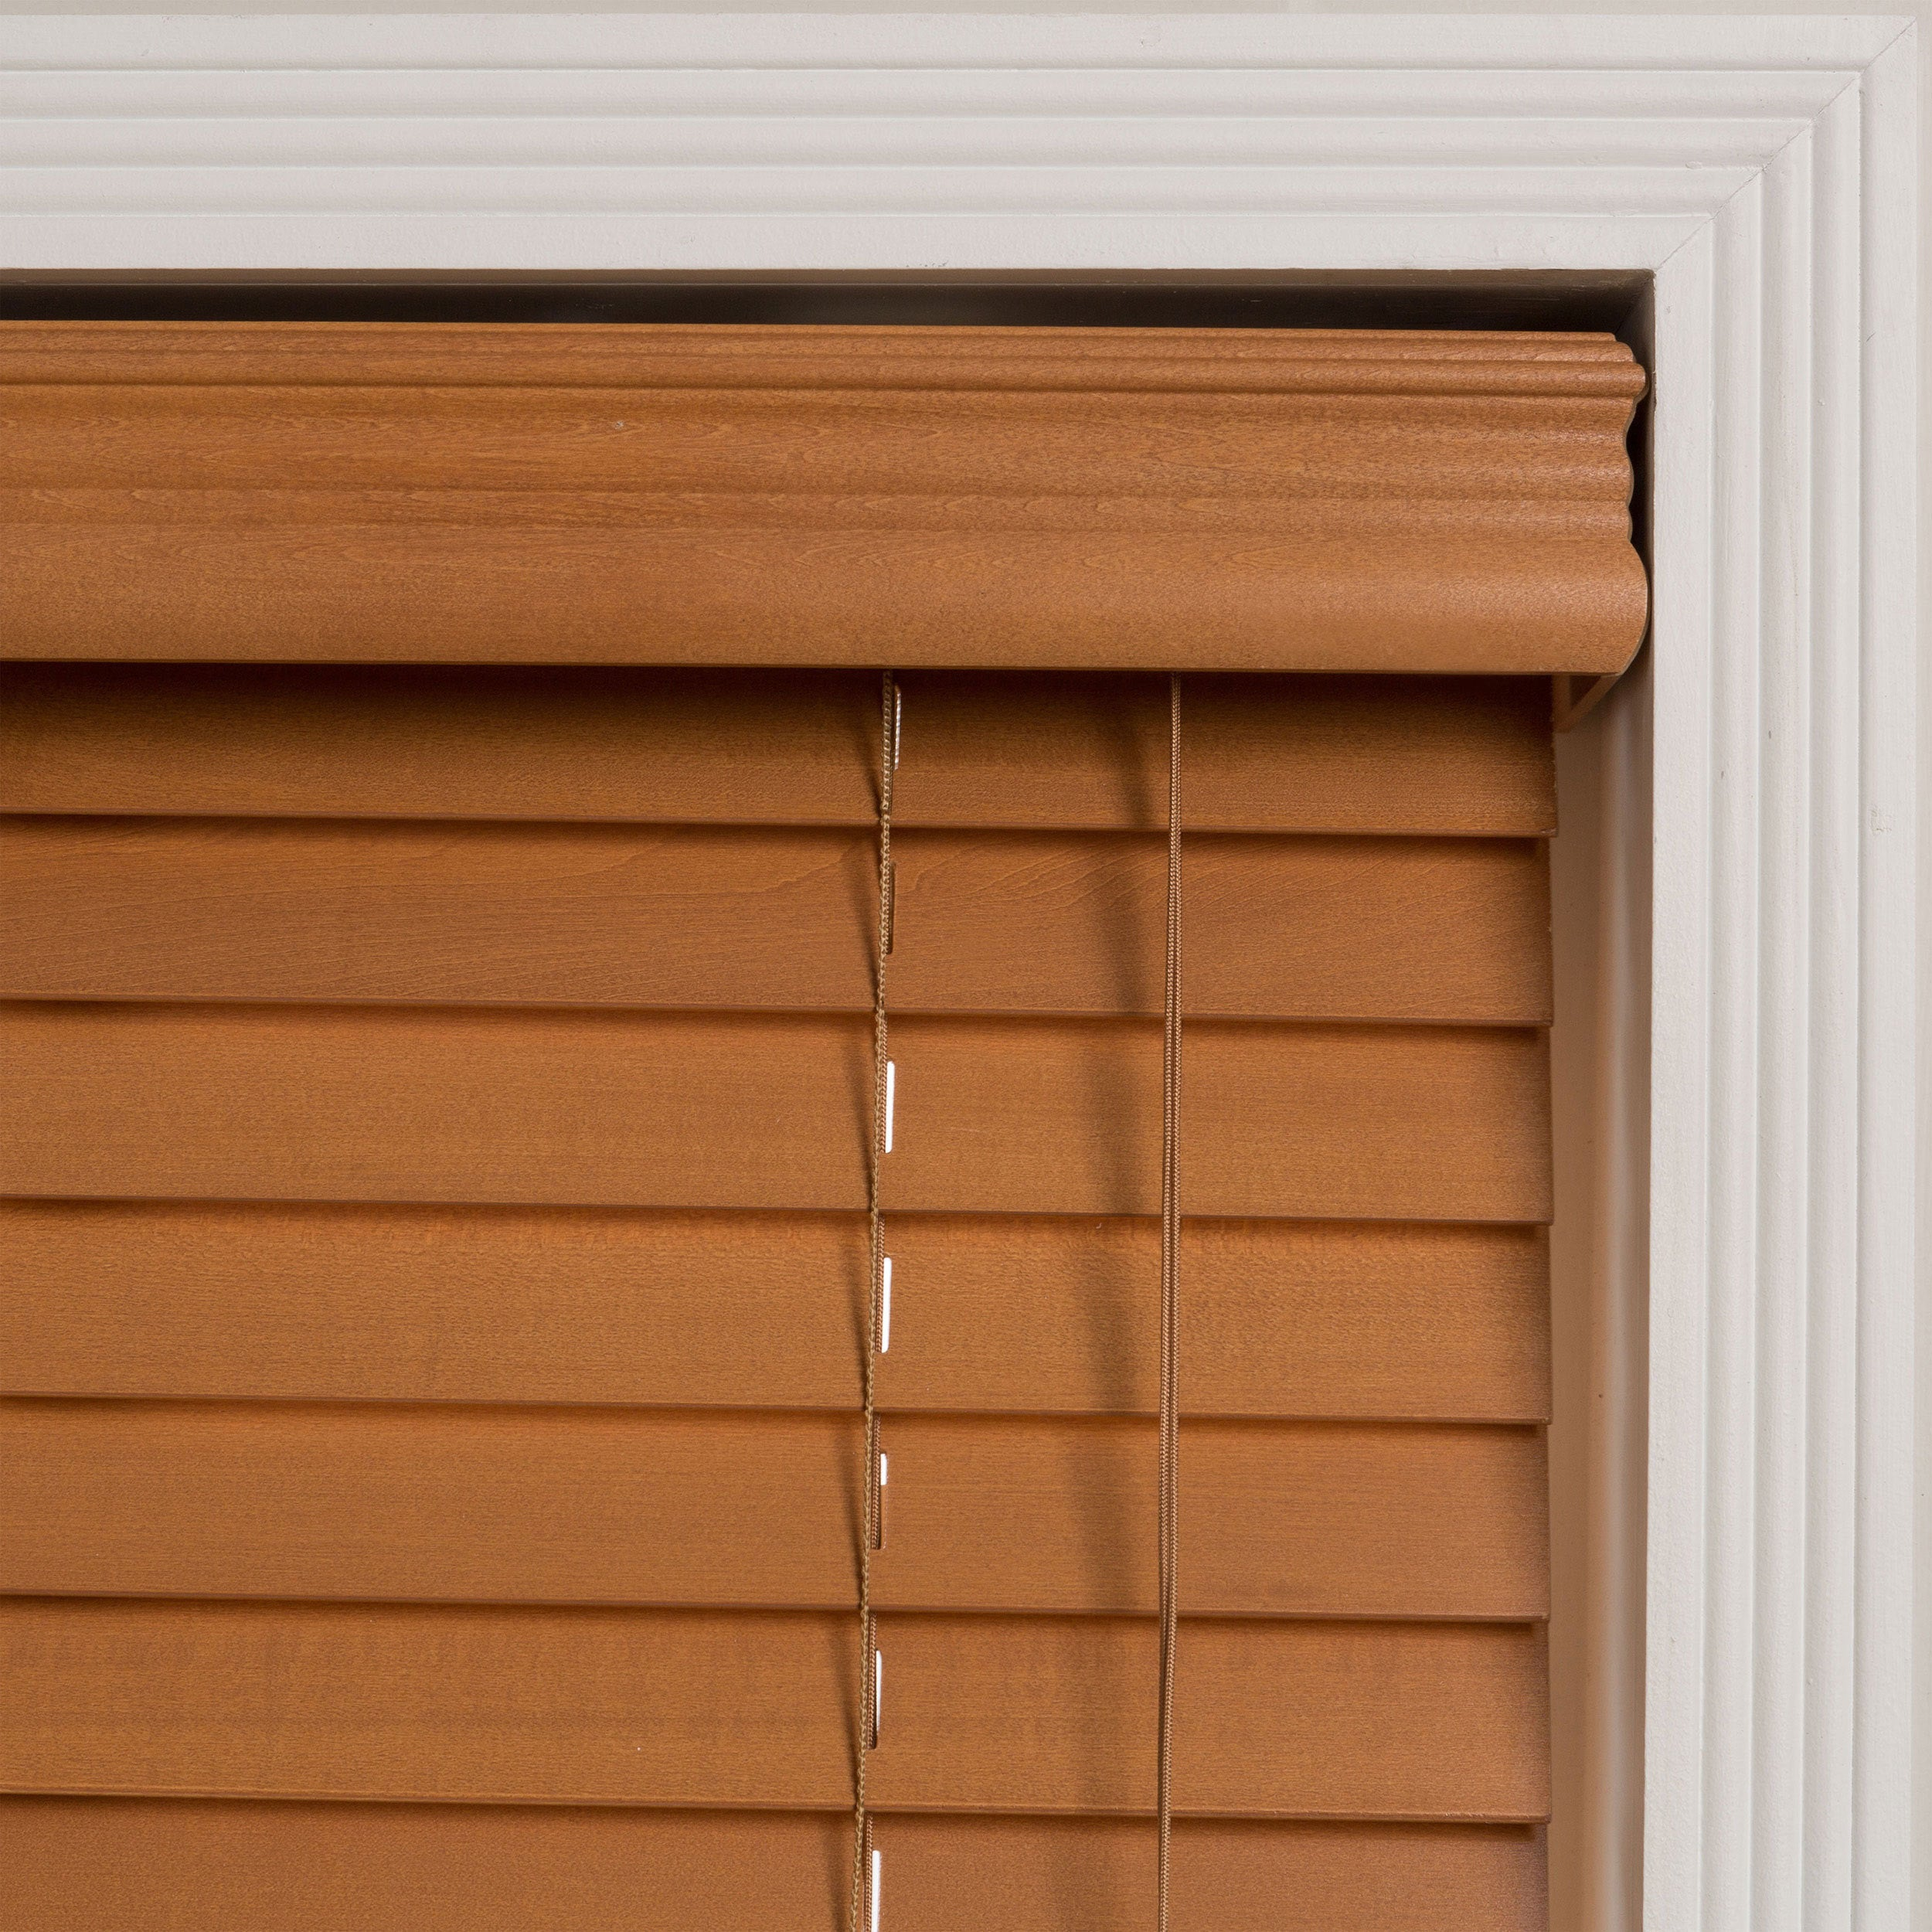 classic curtains adamstown and window shutters full blinds of shores nautical vineyard size sandy